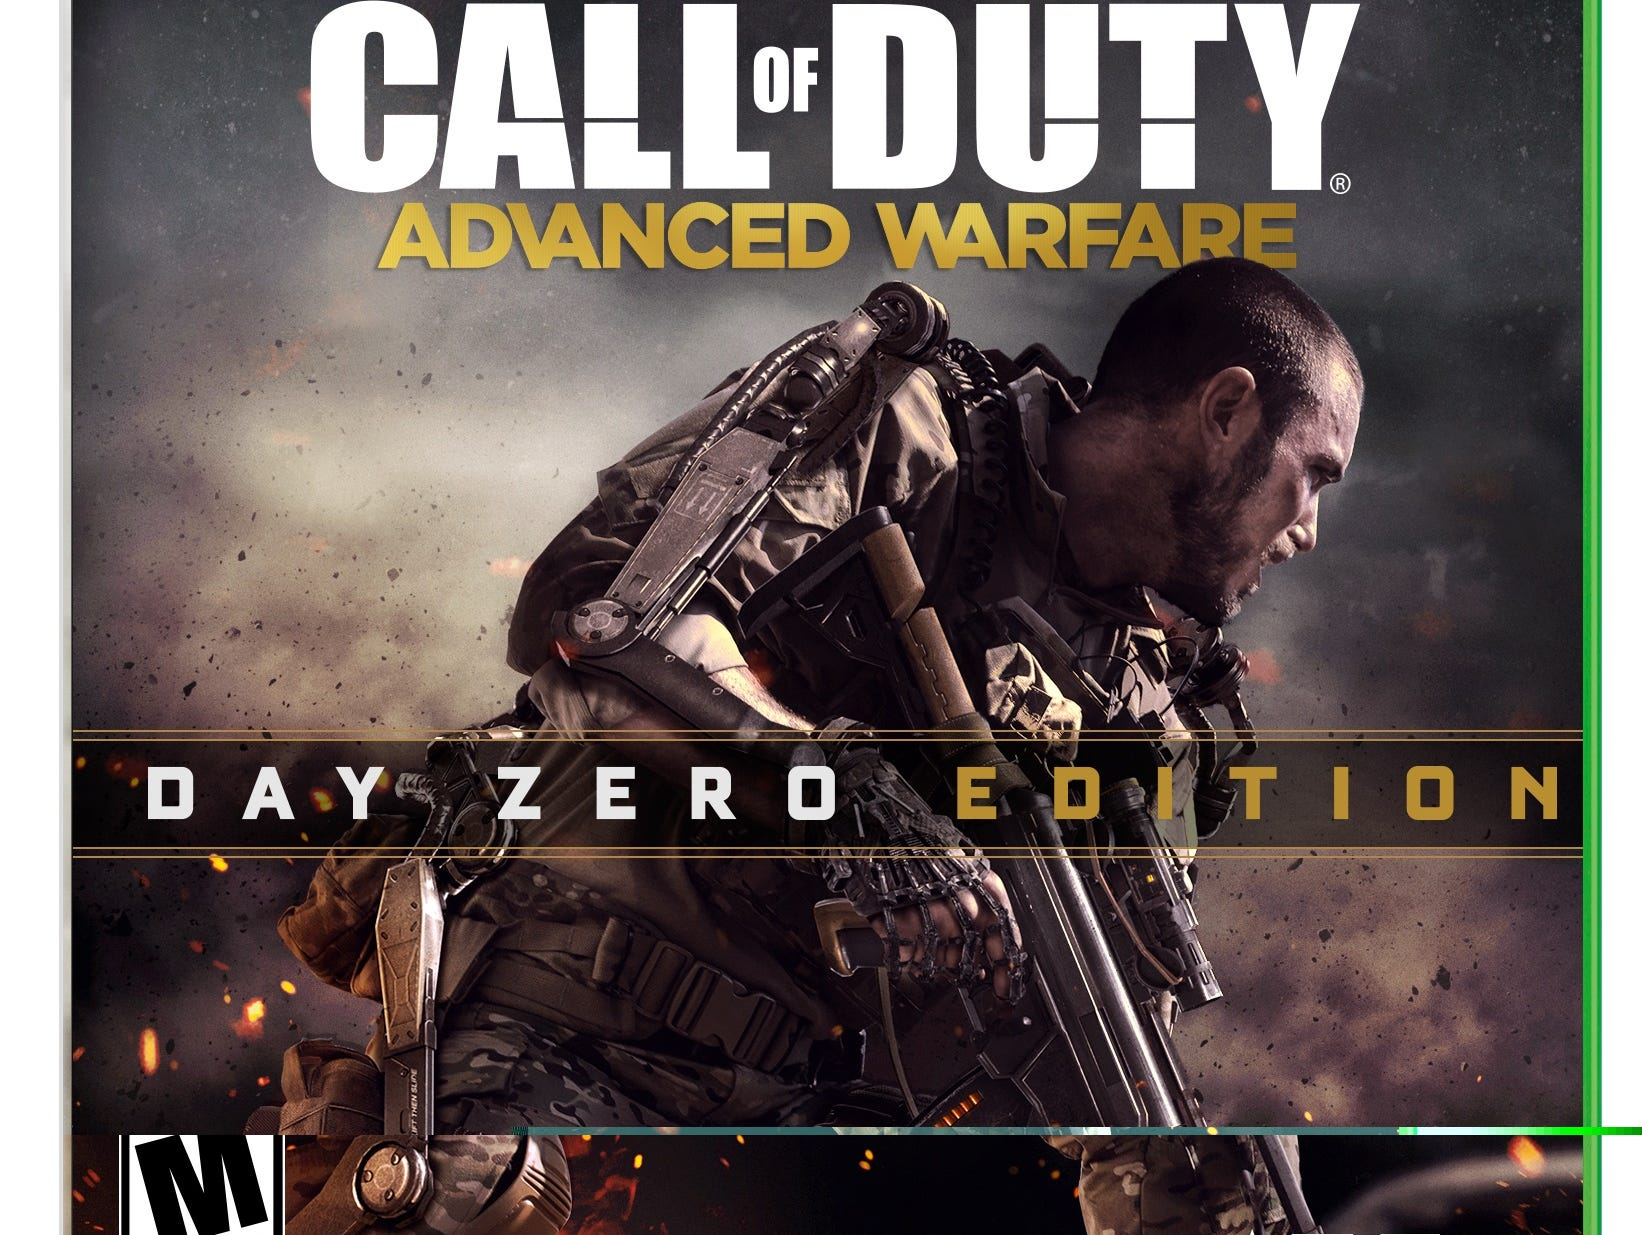 Image of the box art for Xbox One version of the video game 'Call of Duty: Advanced Warfare.'